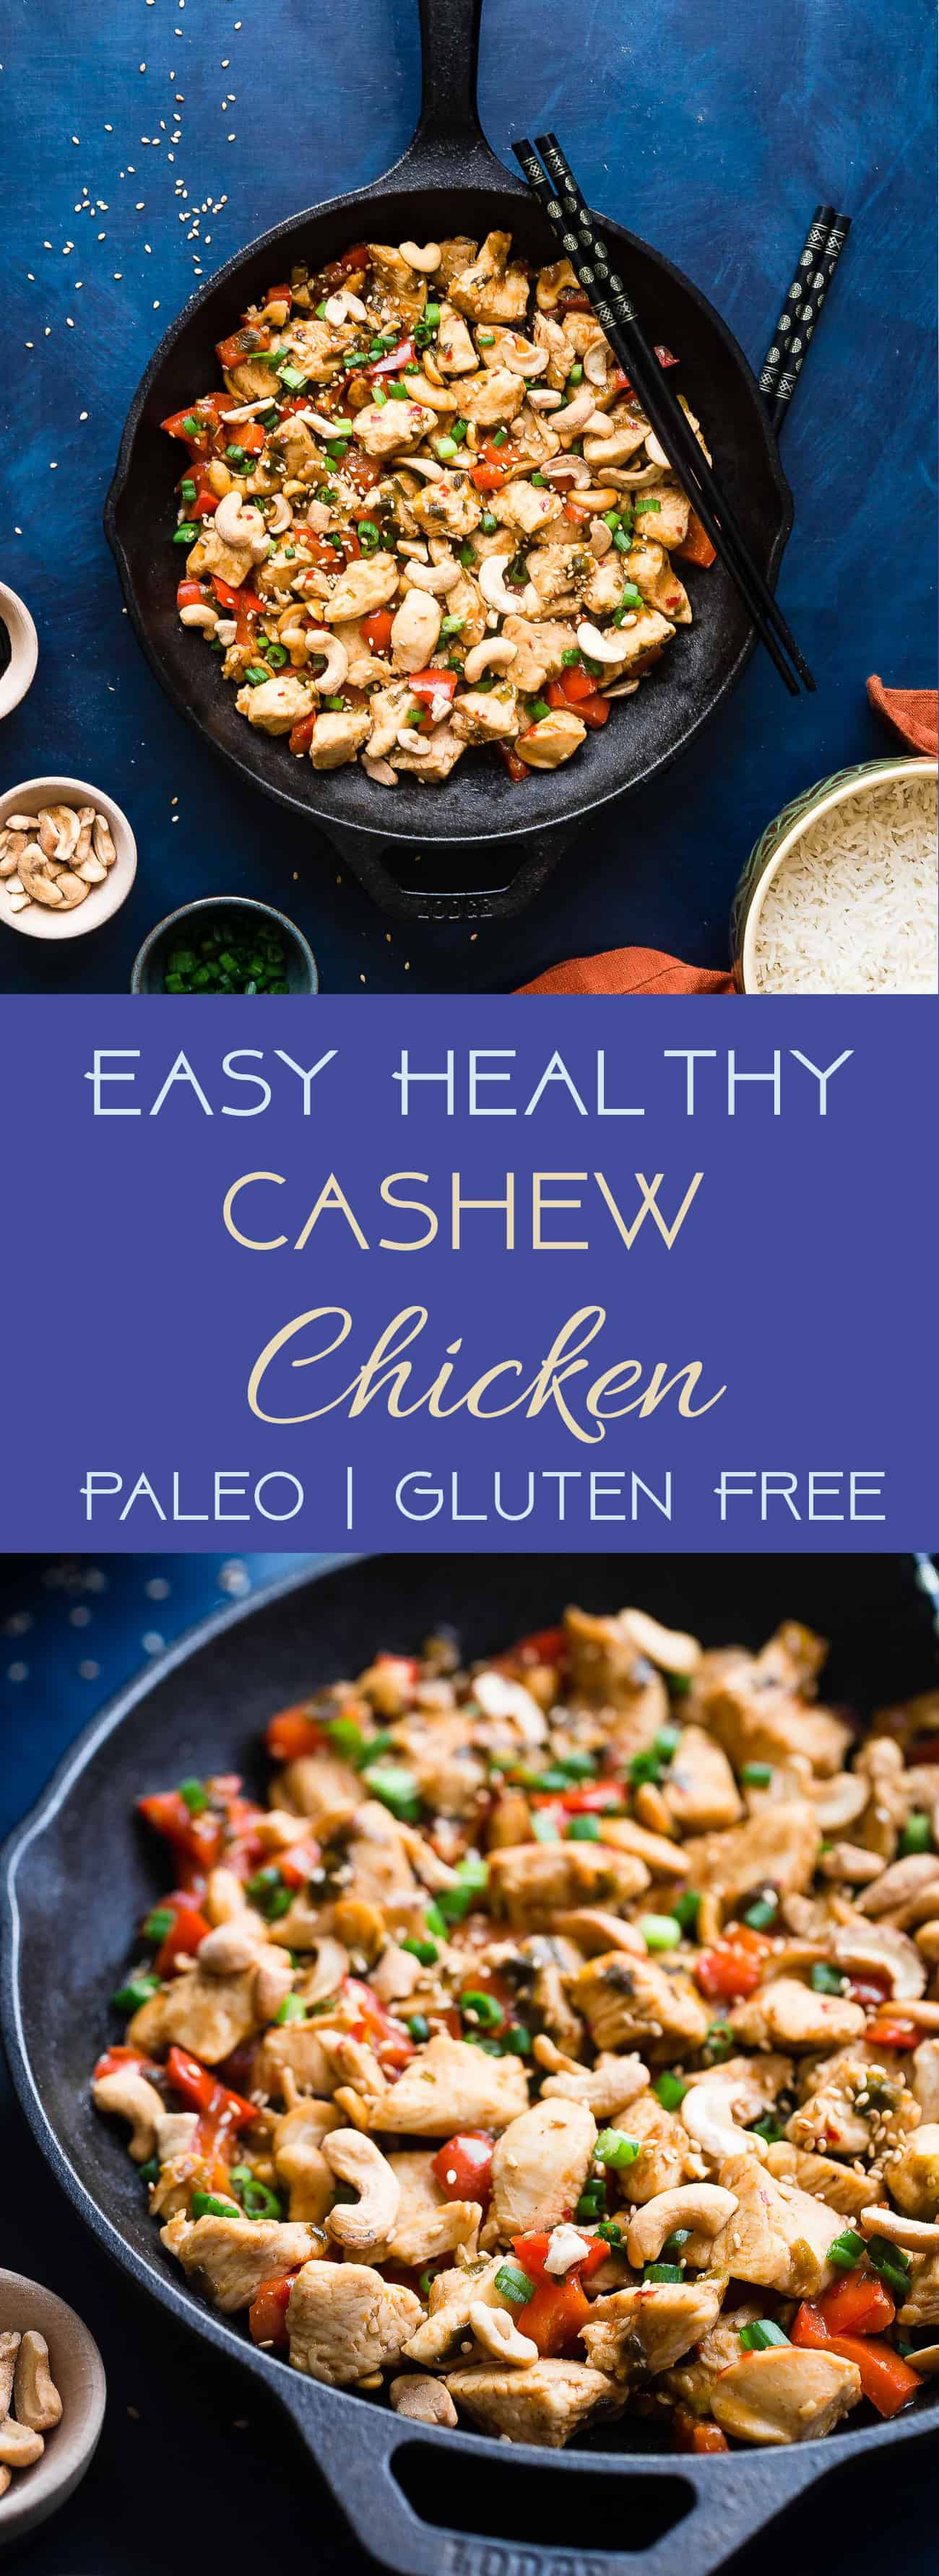 Easy Paleo Cashew Chicken Stir Fry - A healthy, gluten, grain and dairy free weeknight meal that the whole family will love! Ready in 20 minutes and WAY better than takeout! | #Foodfaithfitness | #Paleo #Glutenfree #Healthy #StirFry #Dairyfree